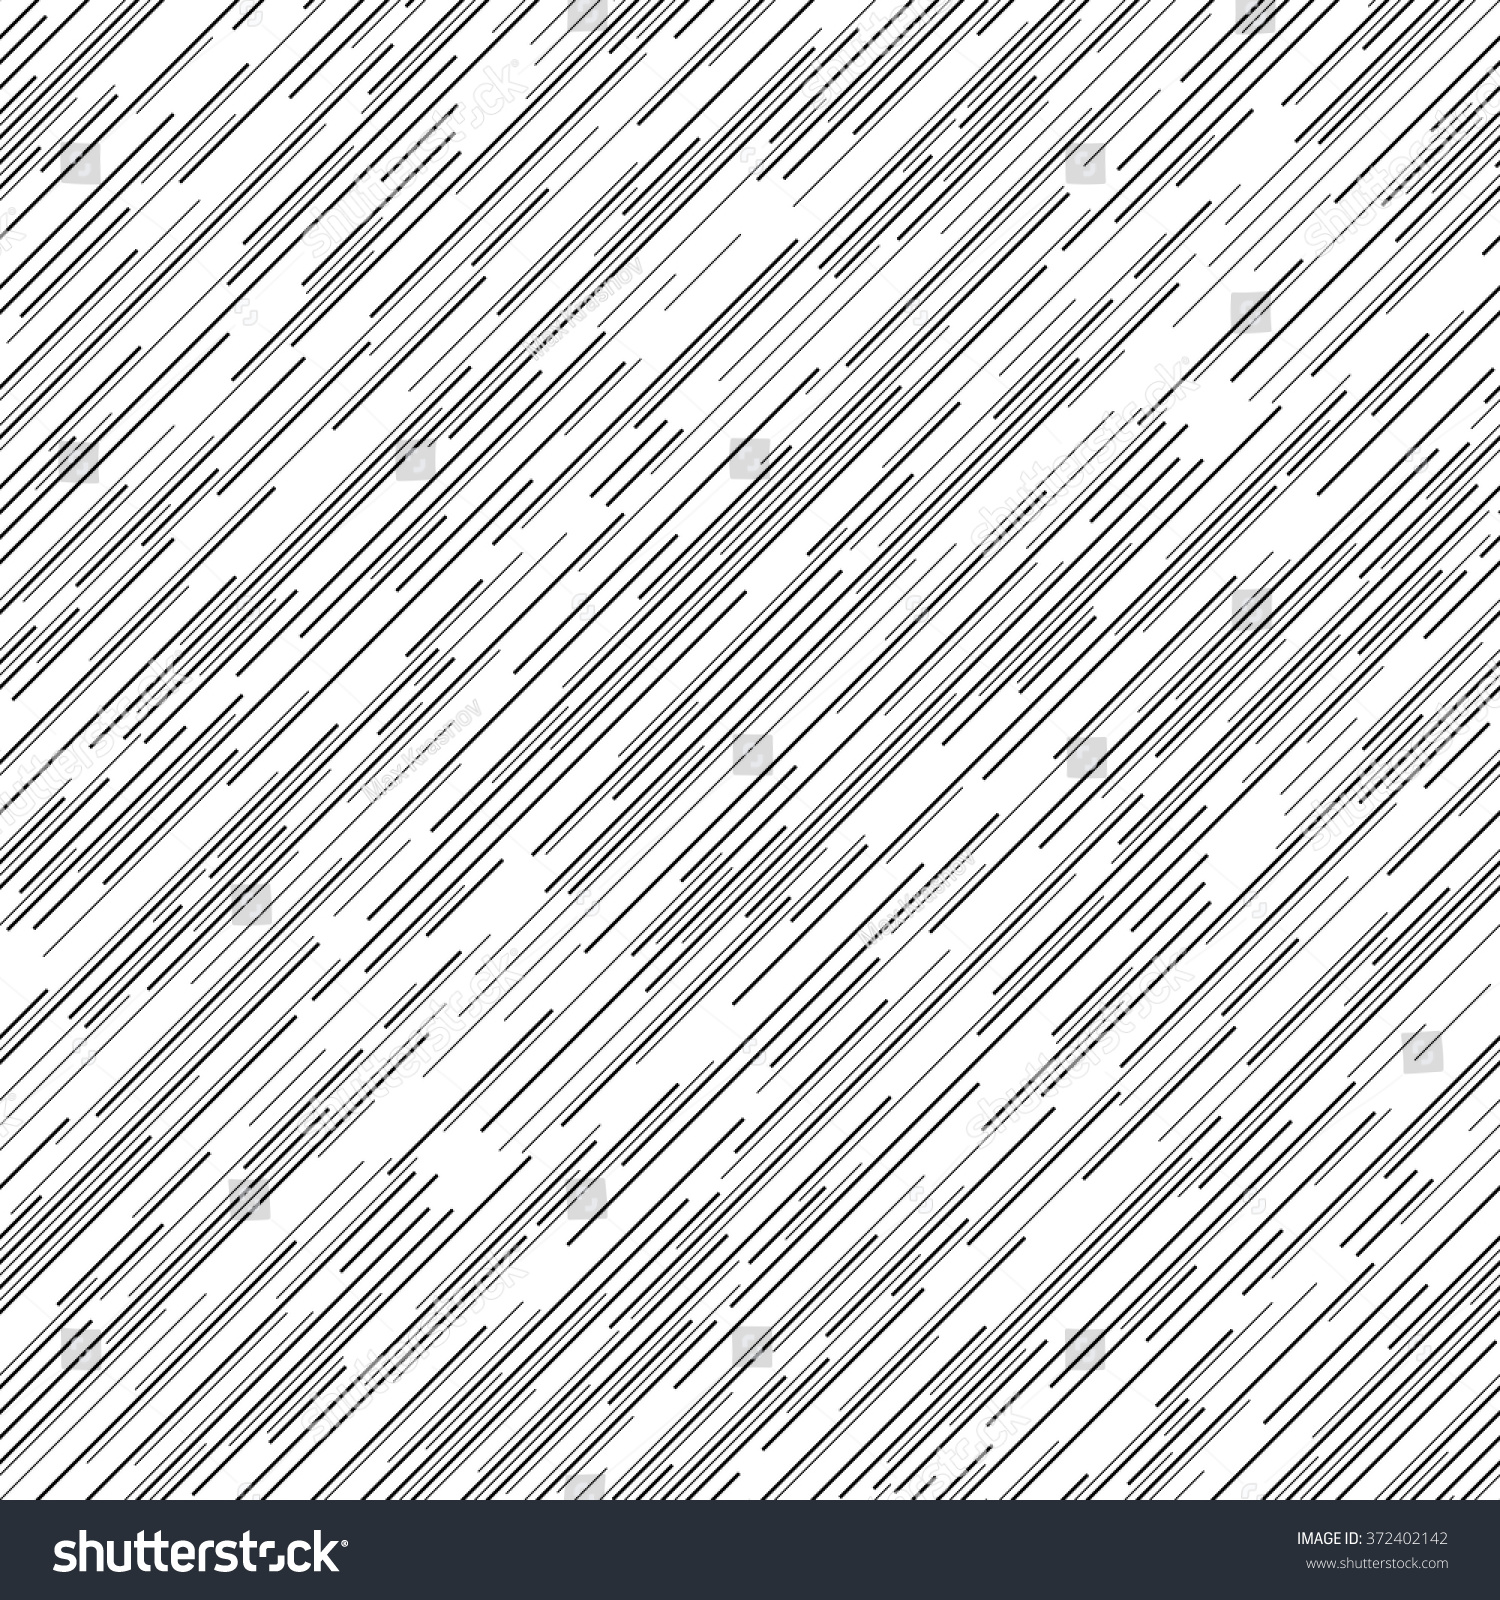 Line And Texture In Art : Seamless diagonal line pattern vector black stock